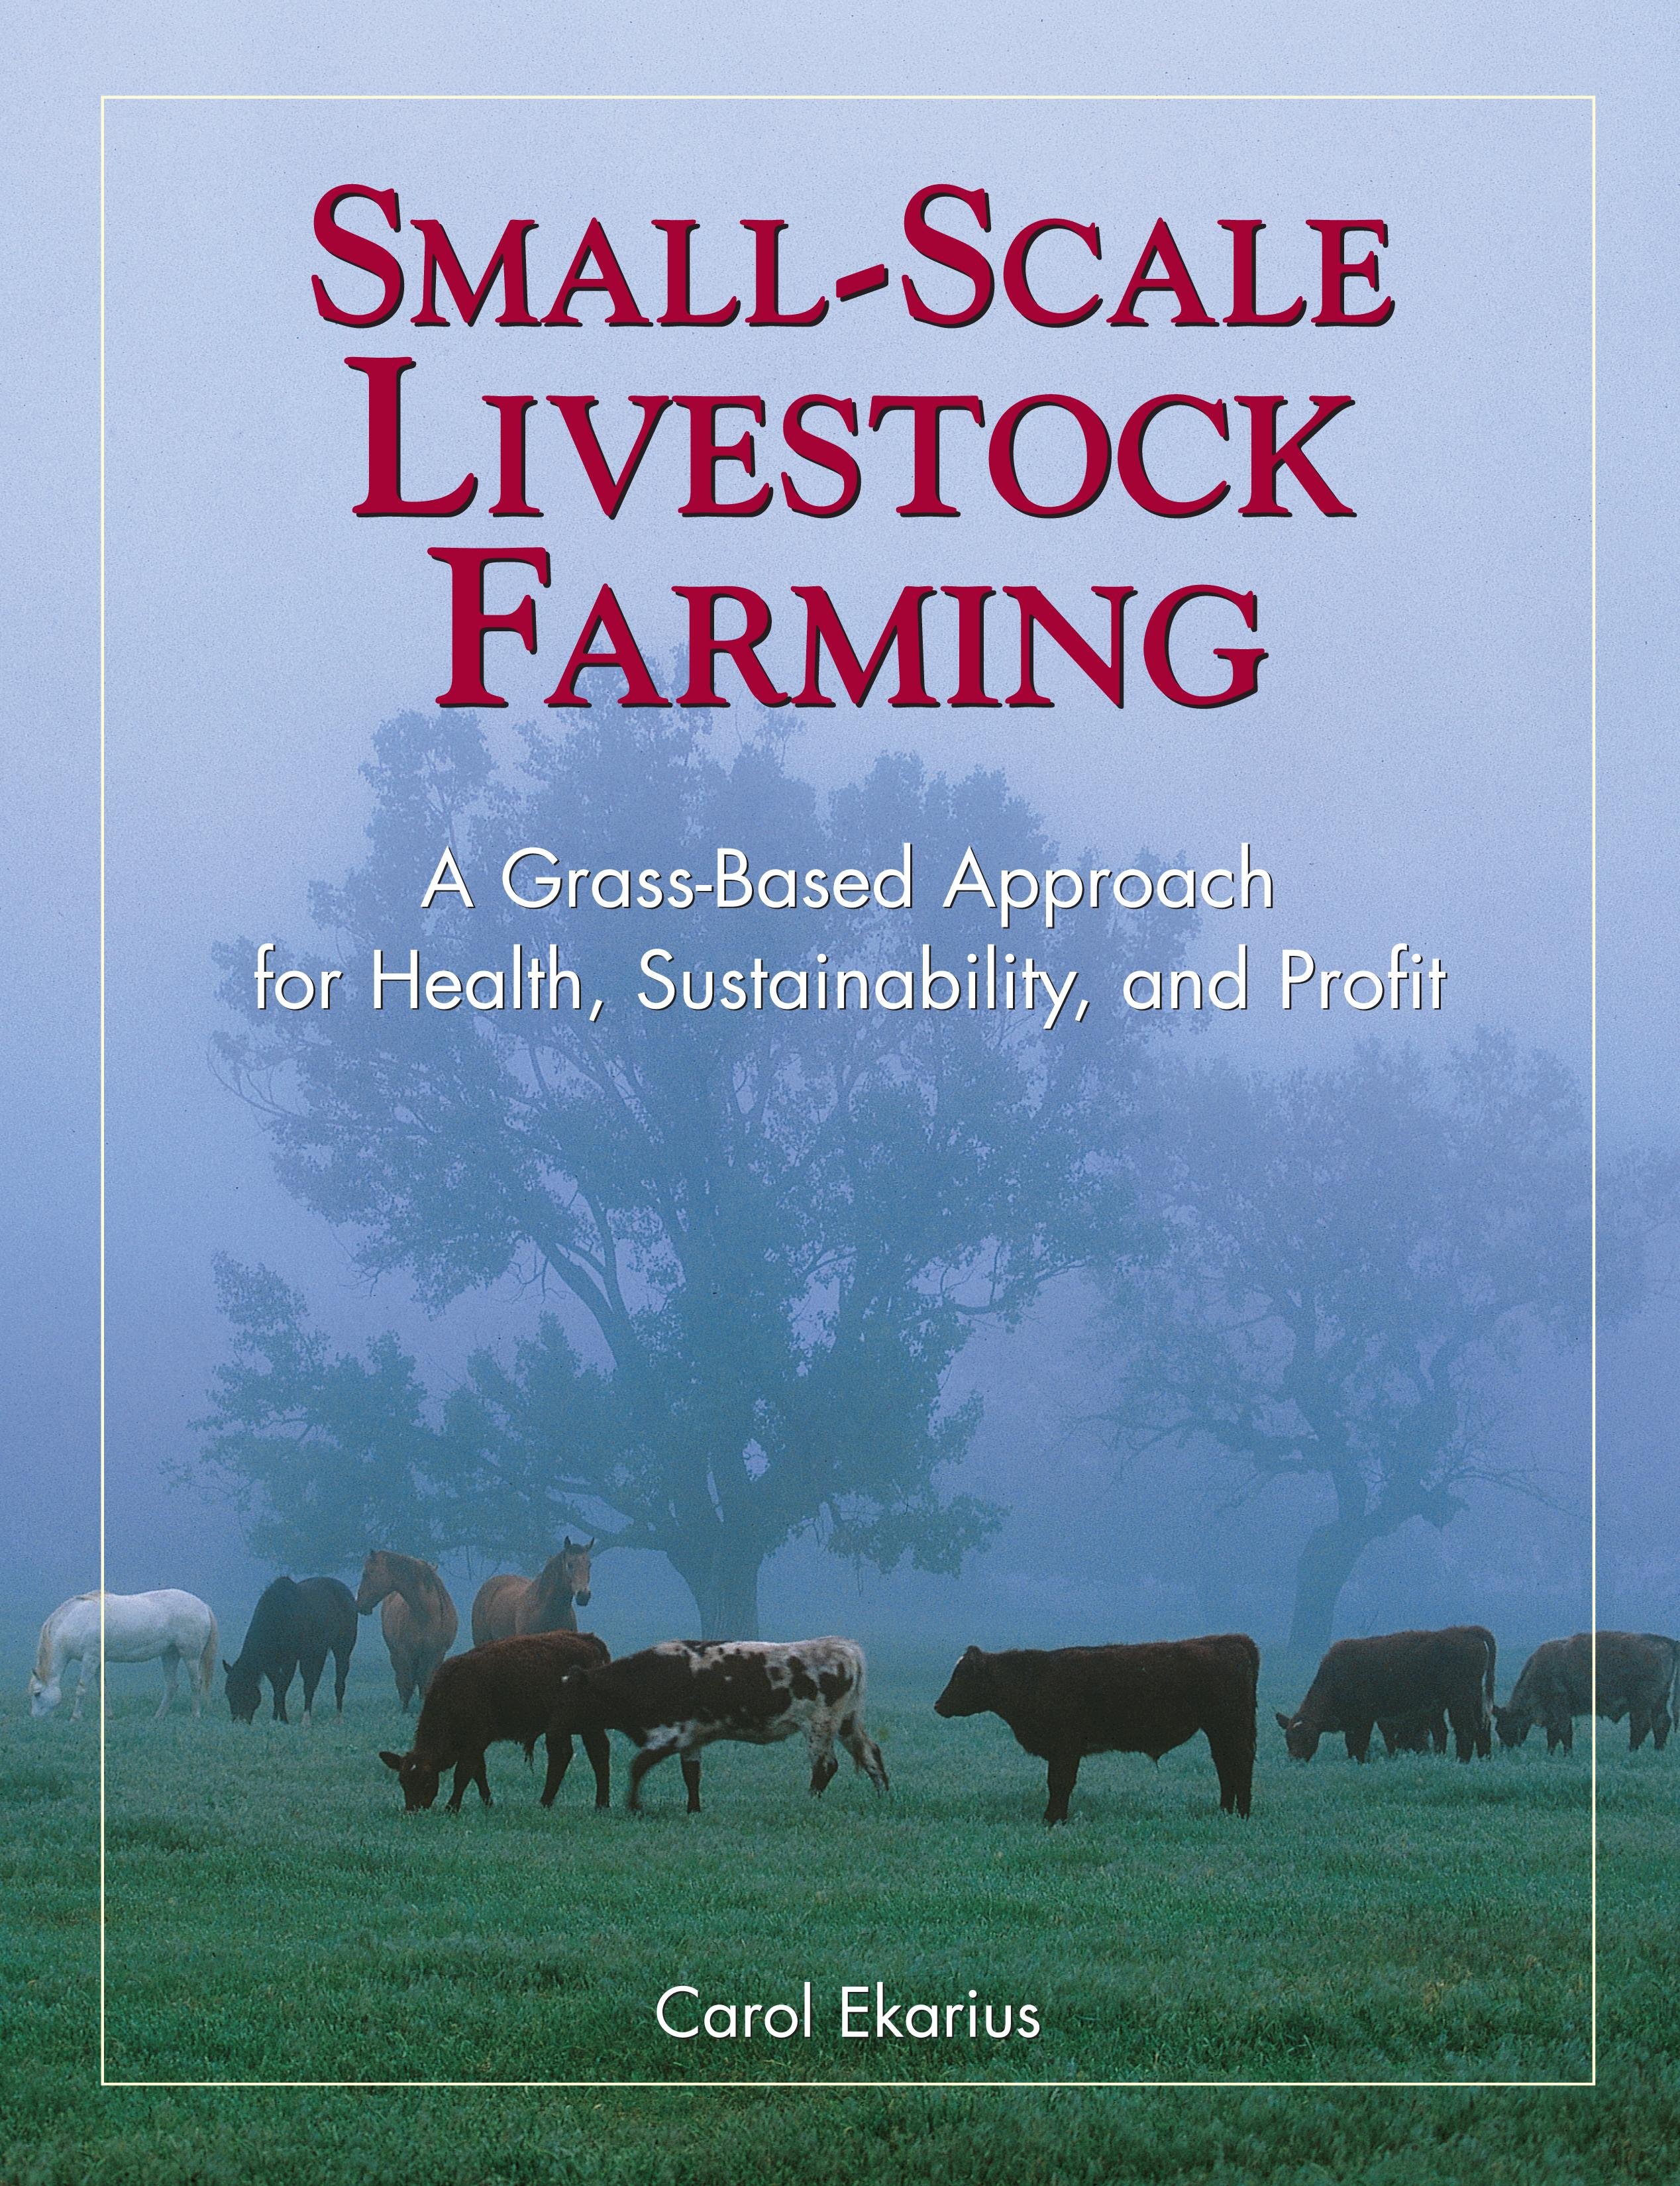 Small-Scale Livestock Farming: A Grass-Based Approach for Health, Sustainability, and Profit EB9781603427340